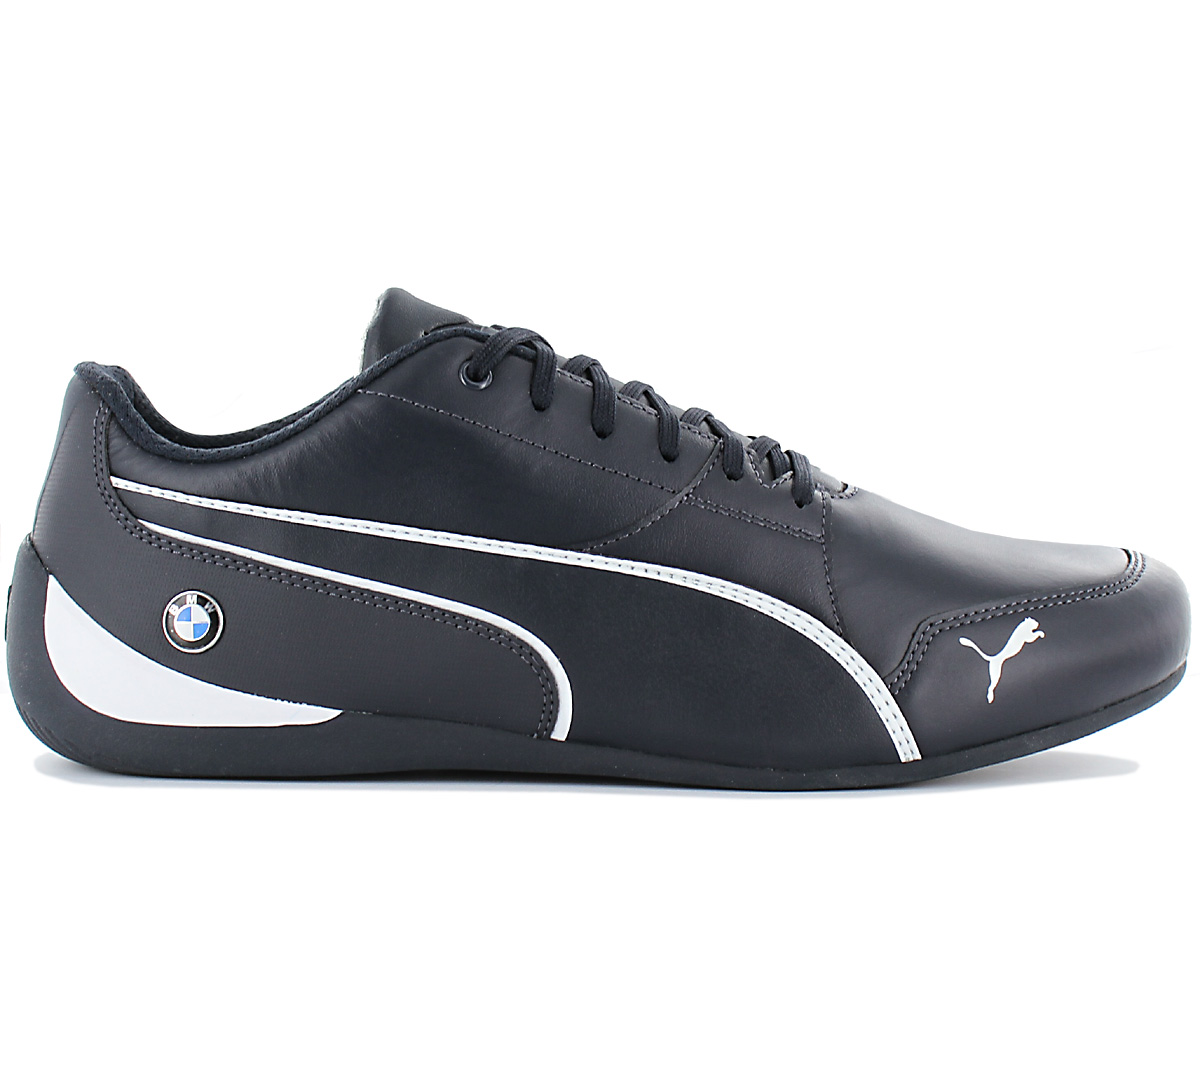 2e34a568cf866 Puma BMW Motorsport Drift Cat 7 Men s Sneakers Shoes Sneakers Ms ...